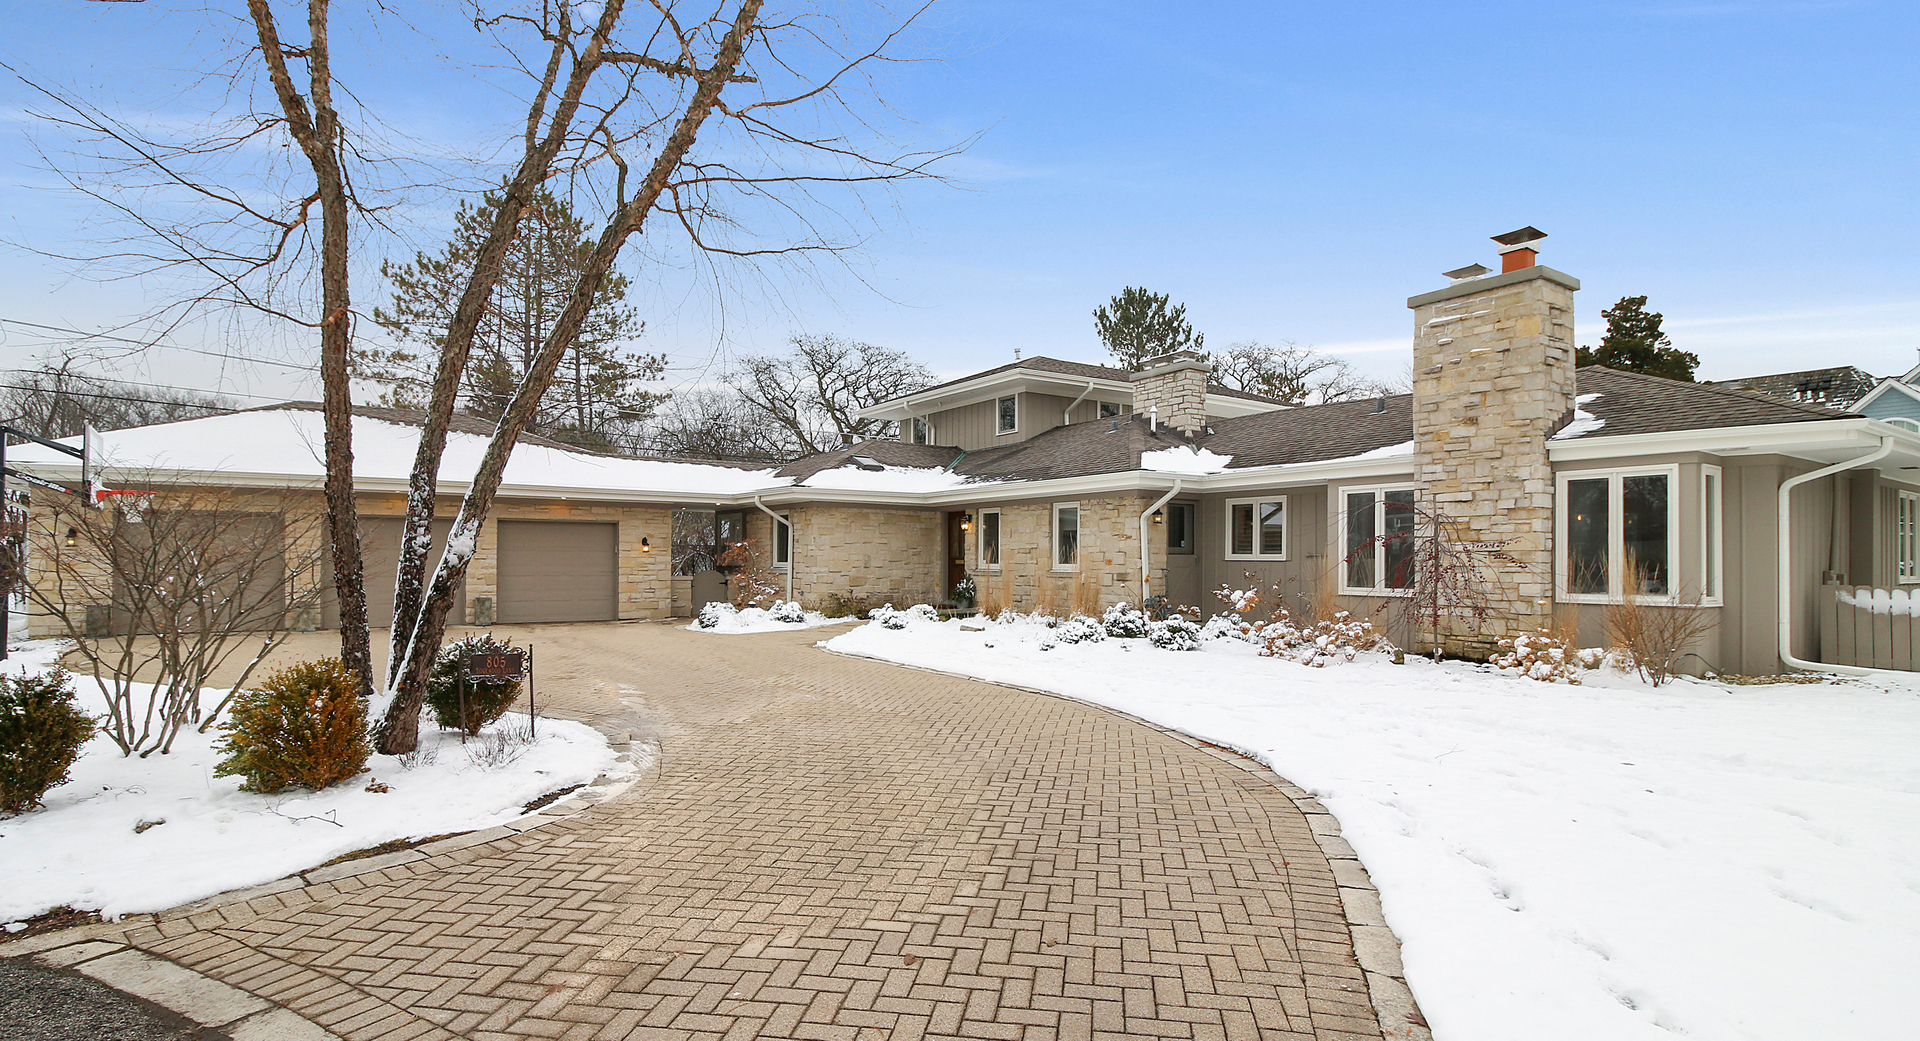 805 Edgewood Lane, Glenview in Cook County, IL 60025 Home for Sale